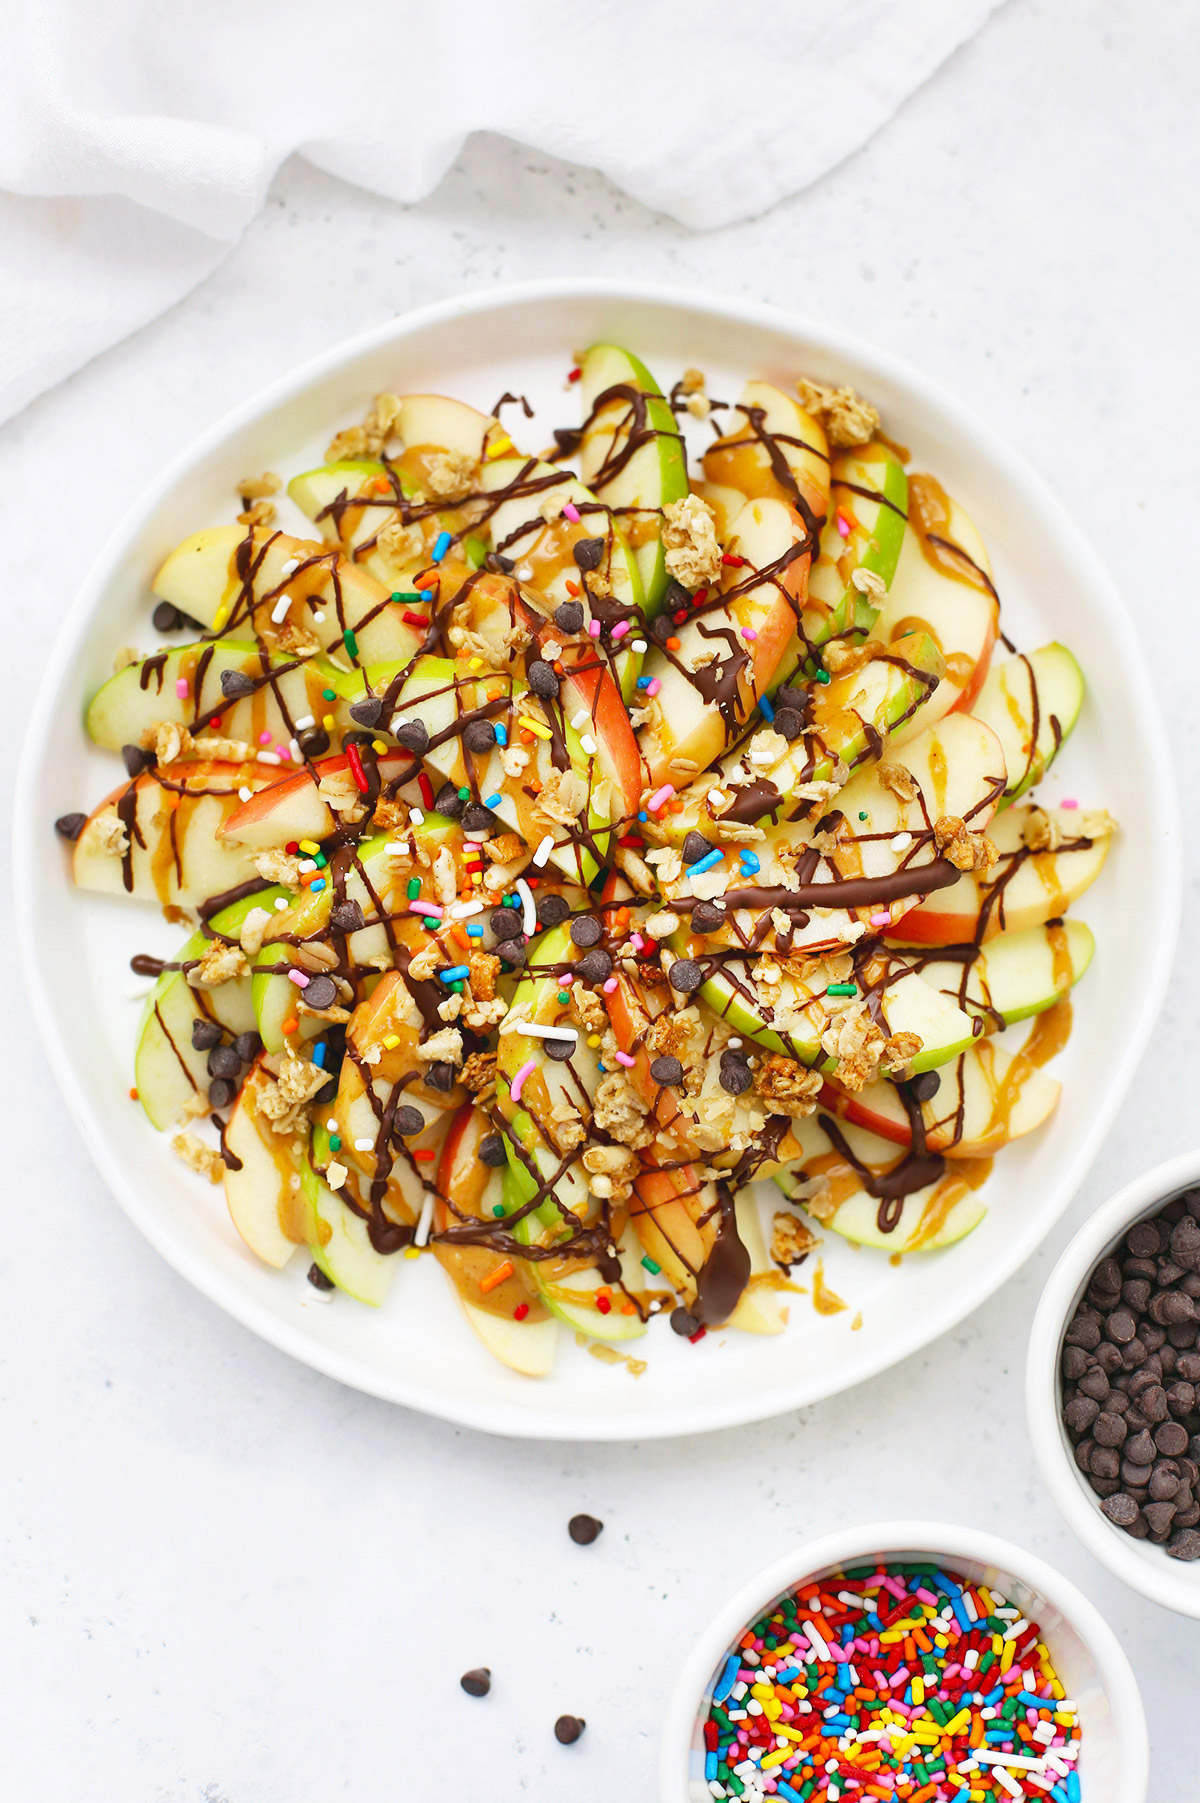 The BEST Apple Nachos from One Lovely Life